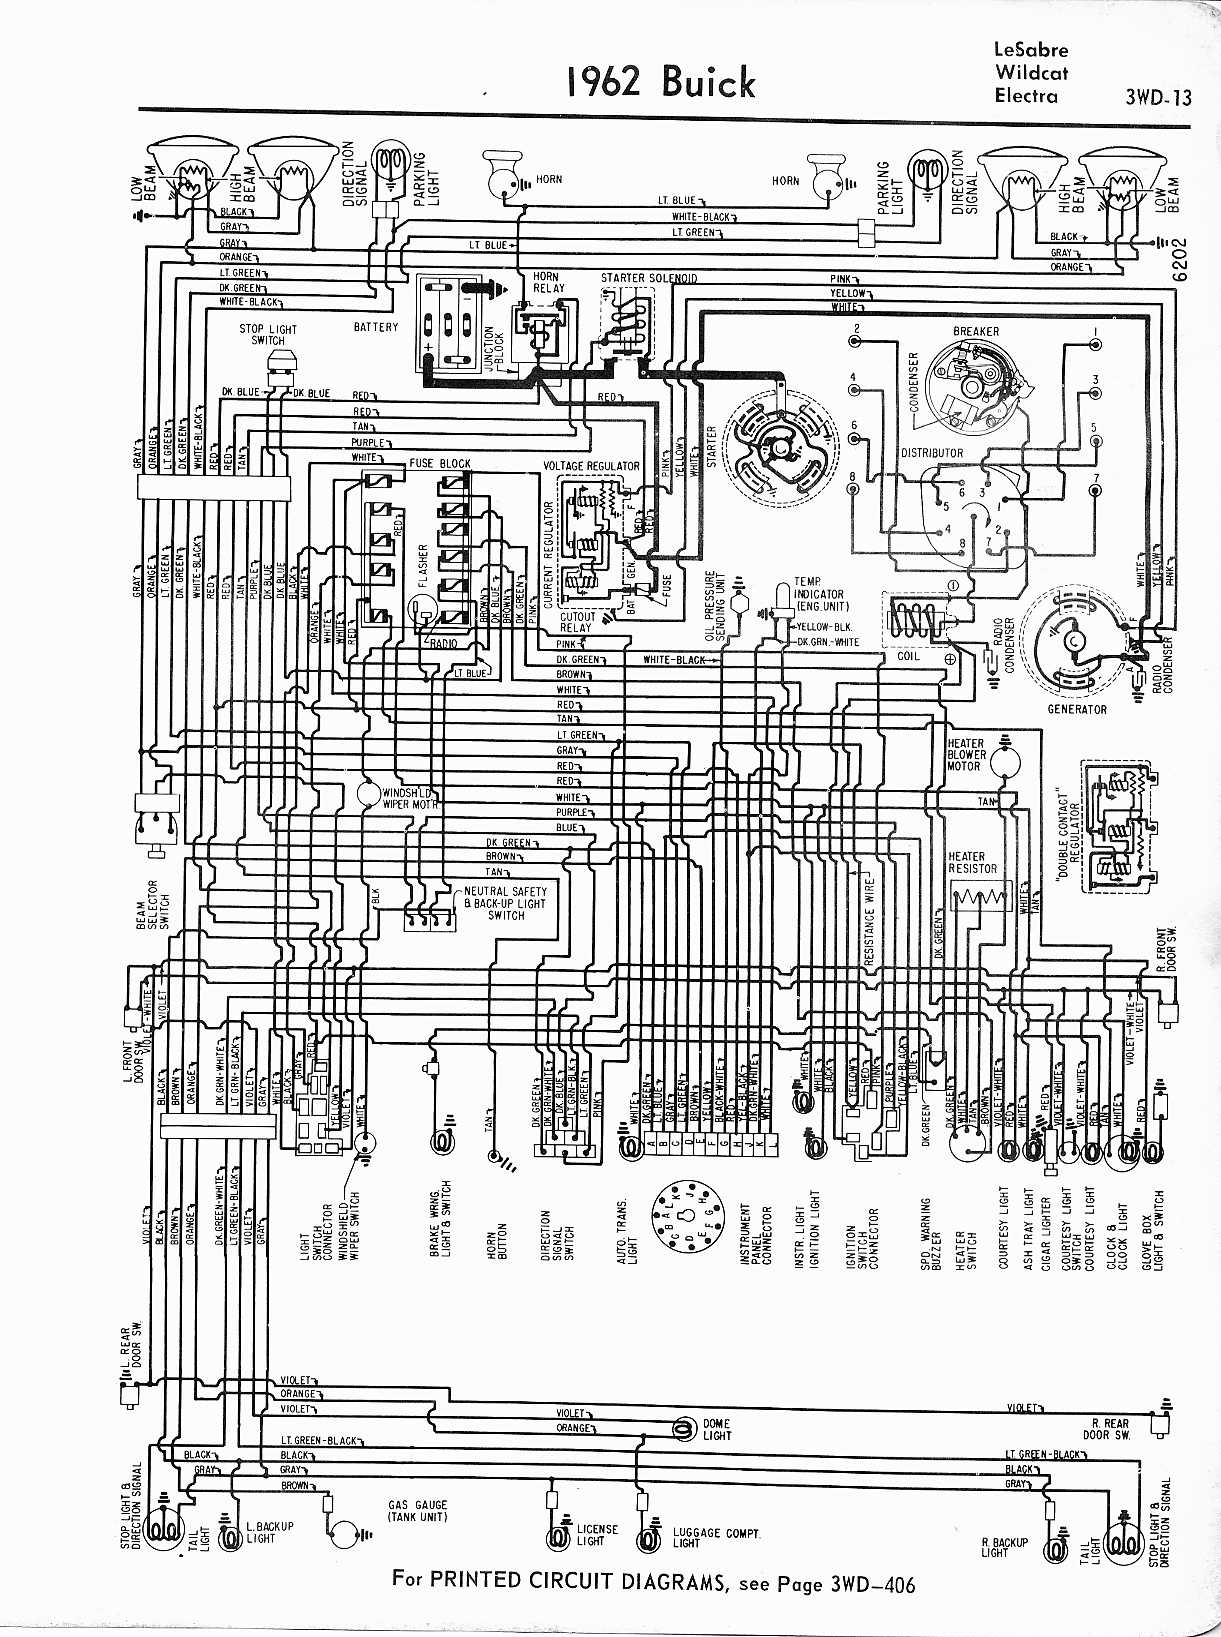 buick 455 wiring diagram enthusiast wiring diagrams \u2022 buick 455 engine 1969 buick skylark engine diagram data set u2022 rh nicaea co buick century wiring diagram 2004 buick lesabre wiring diagram